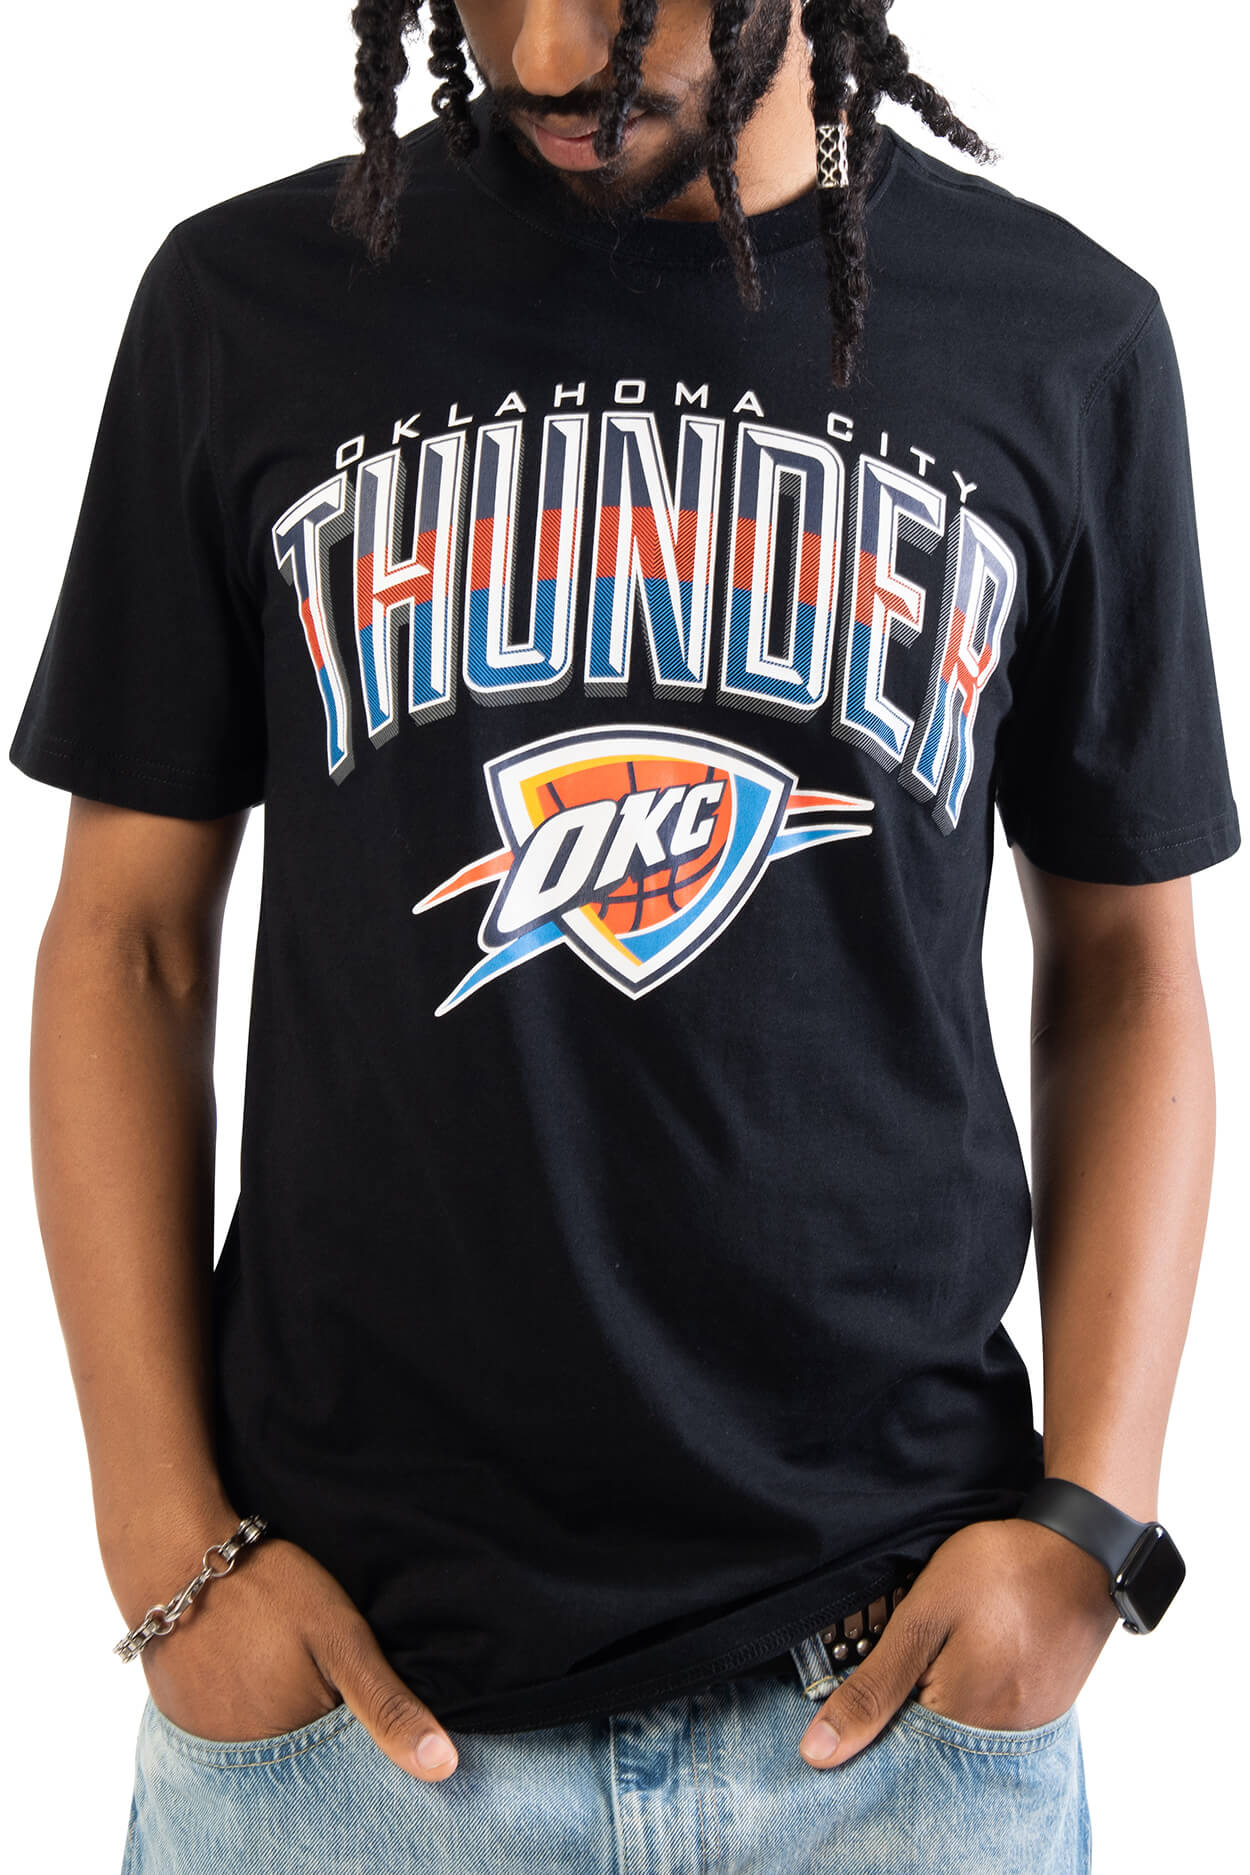 NBA Oklahoma City Thunder Men's Short Sleeve Tee|Oklahoma City Thunder